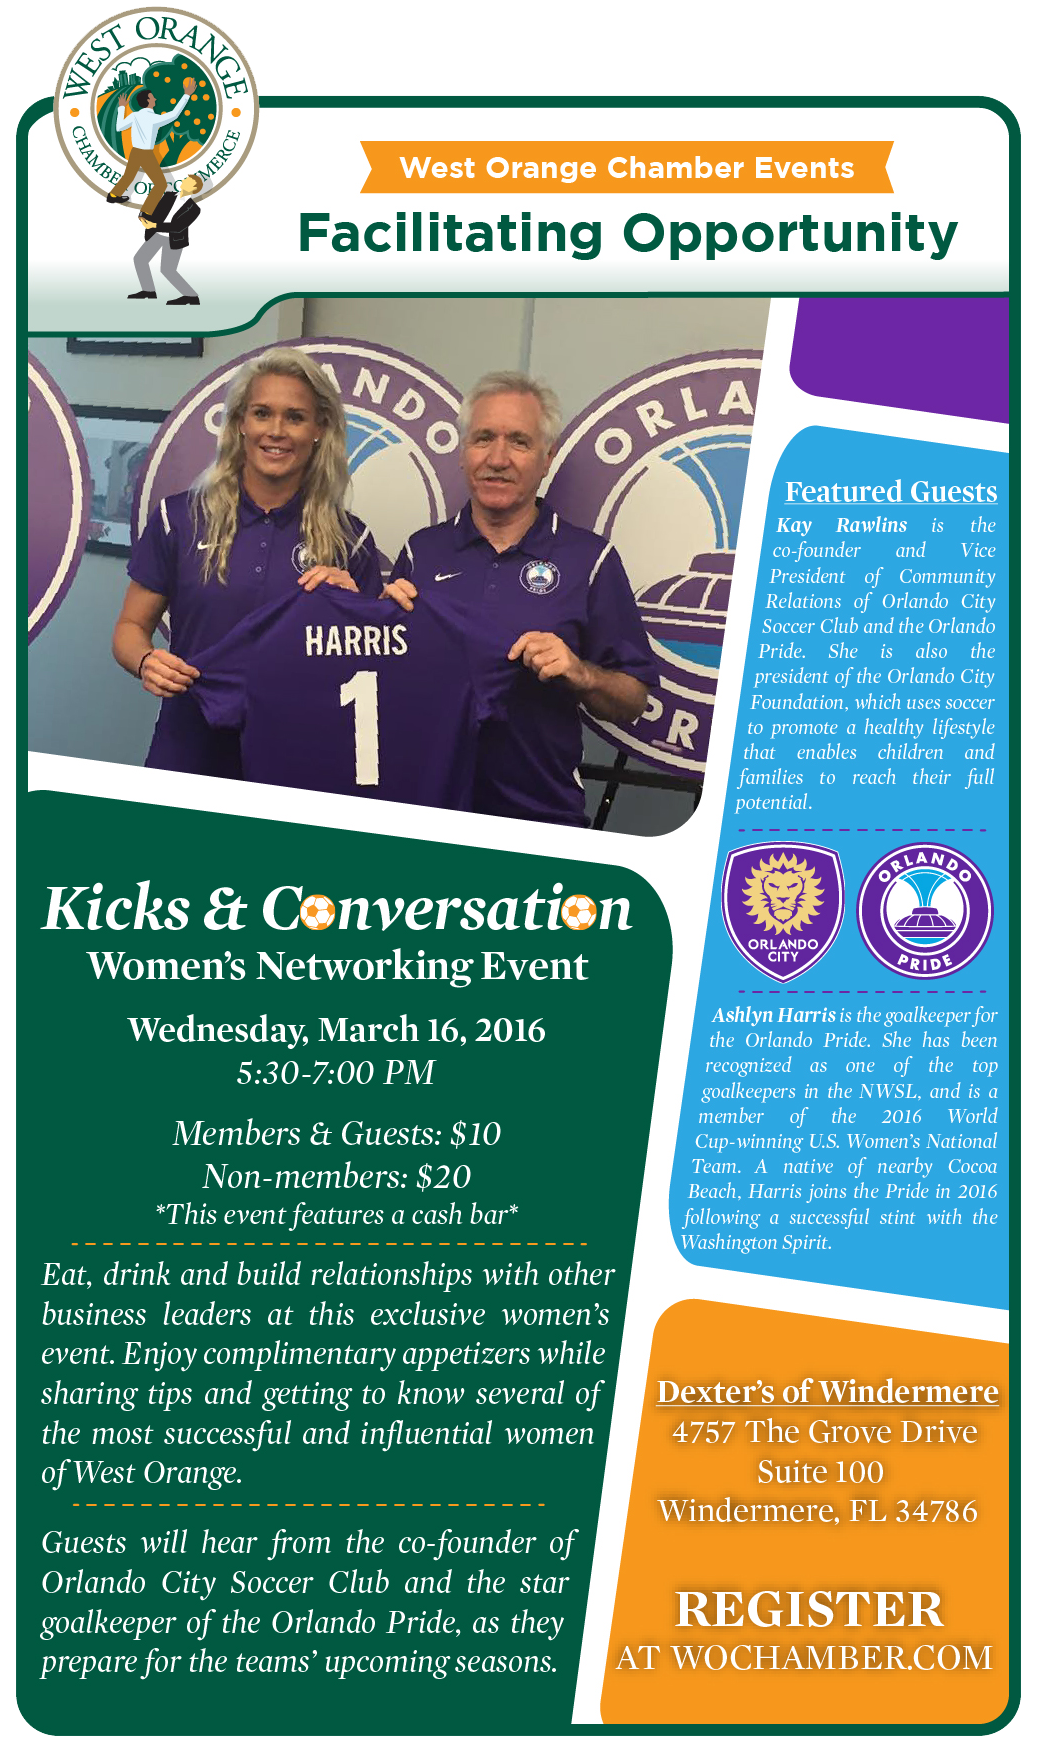 Click for more information on Kicks & Conversation!